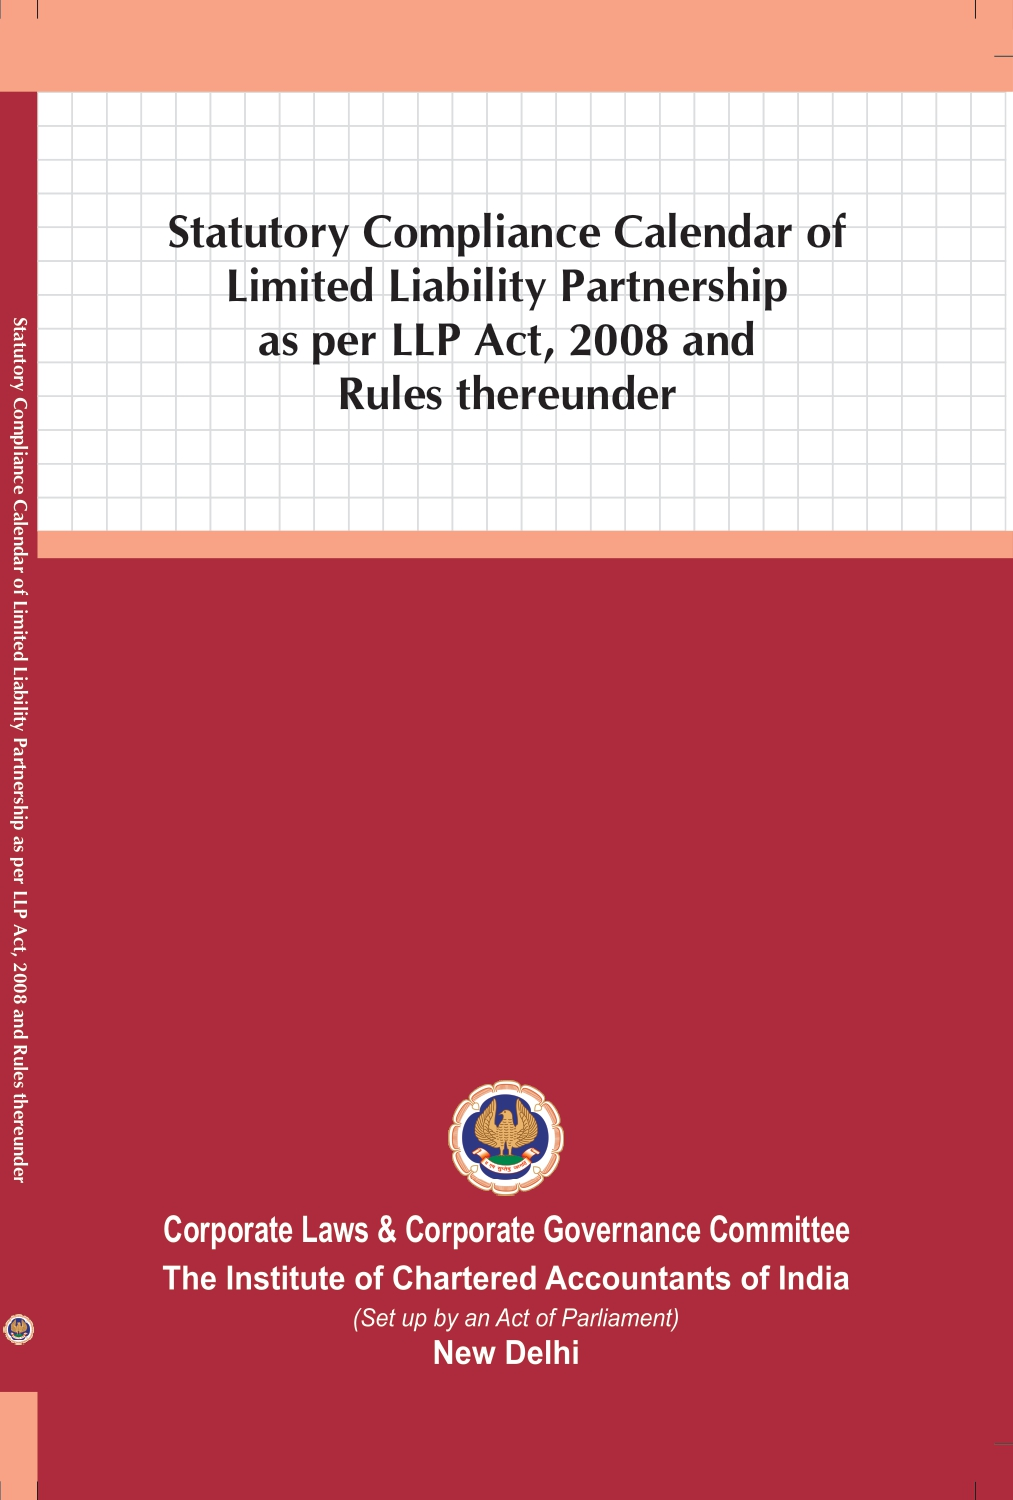 Statutory Compliance Calendar of Limited Liability Partnership as per LLP Act, 2008 and Rules thereunder (January, 2021)